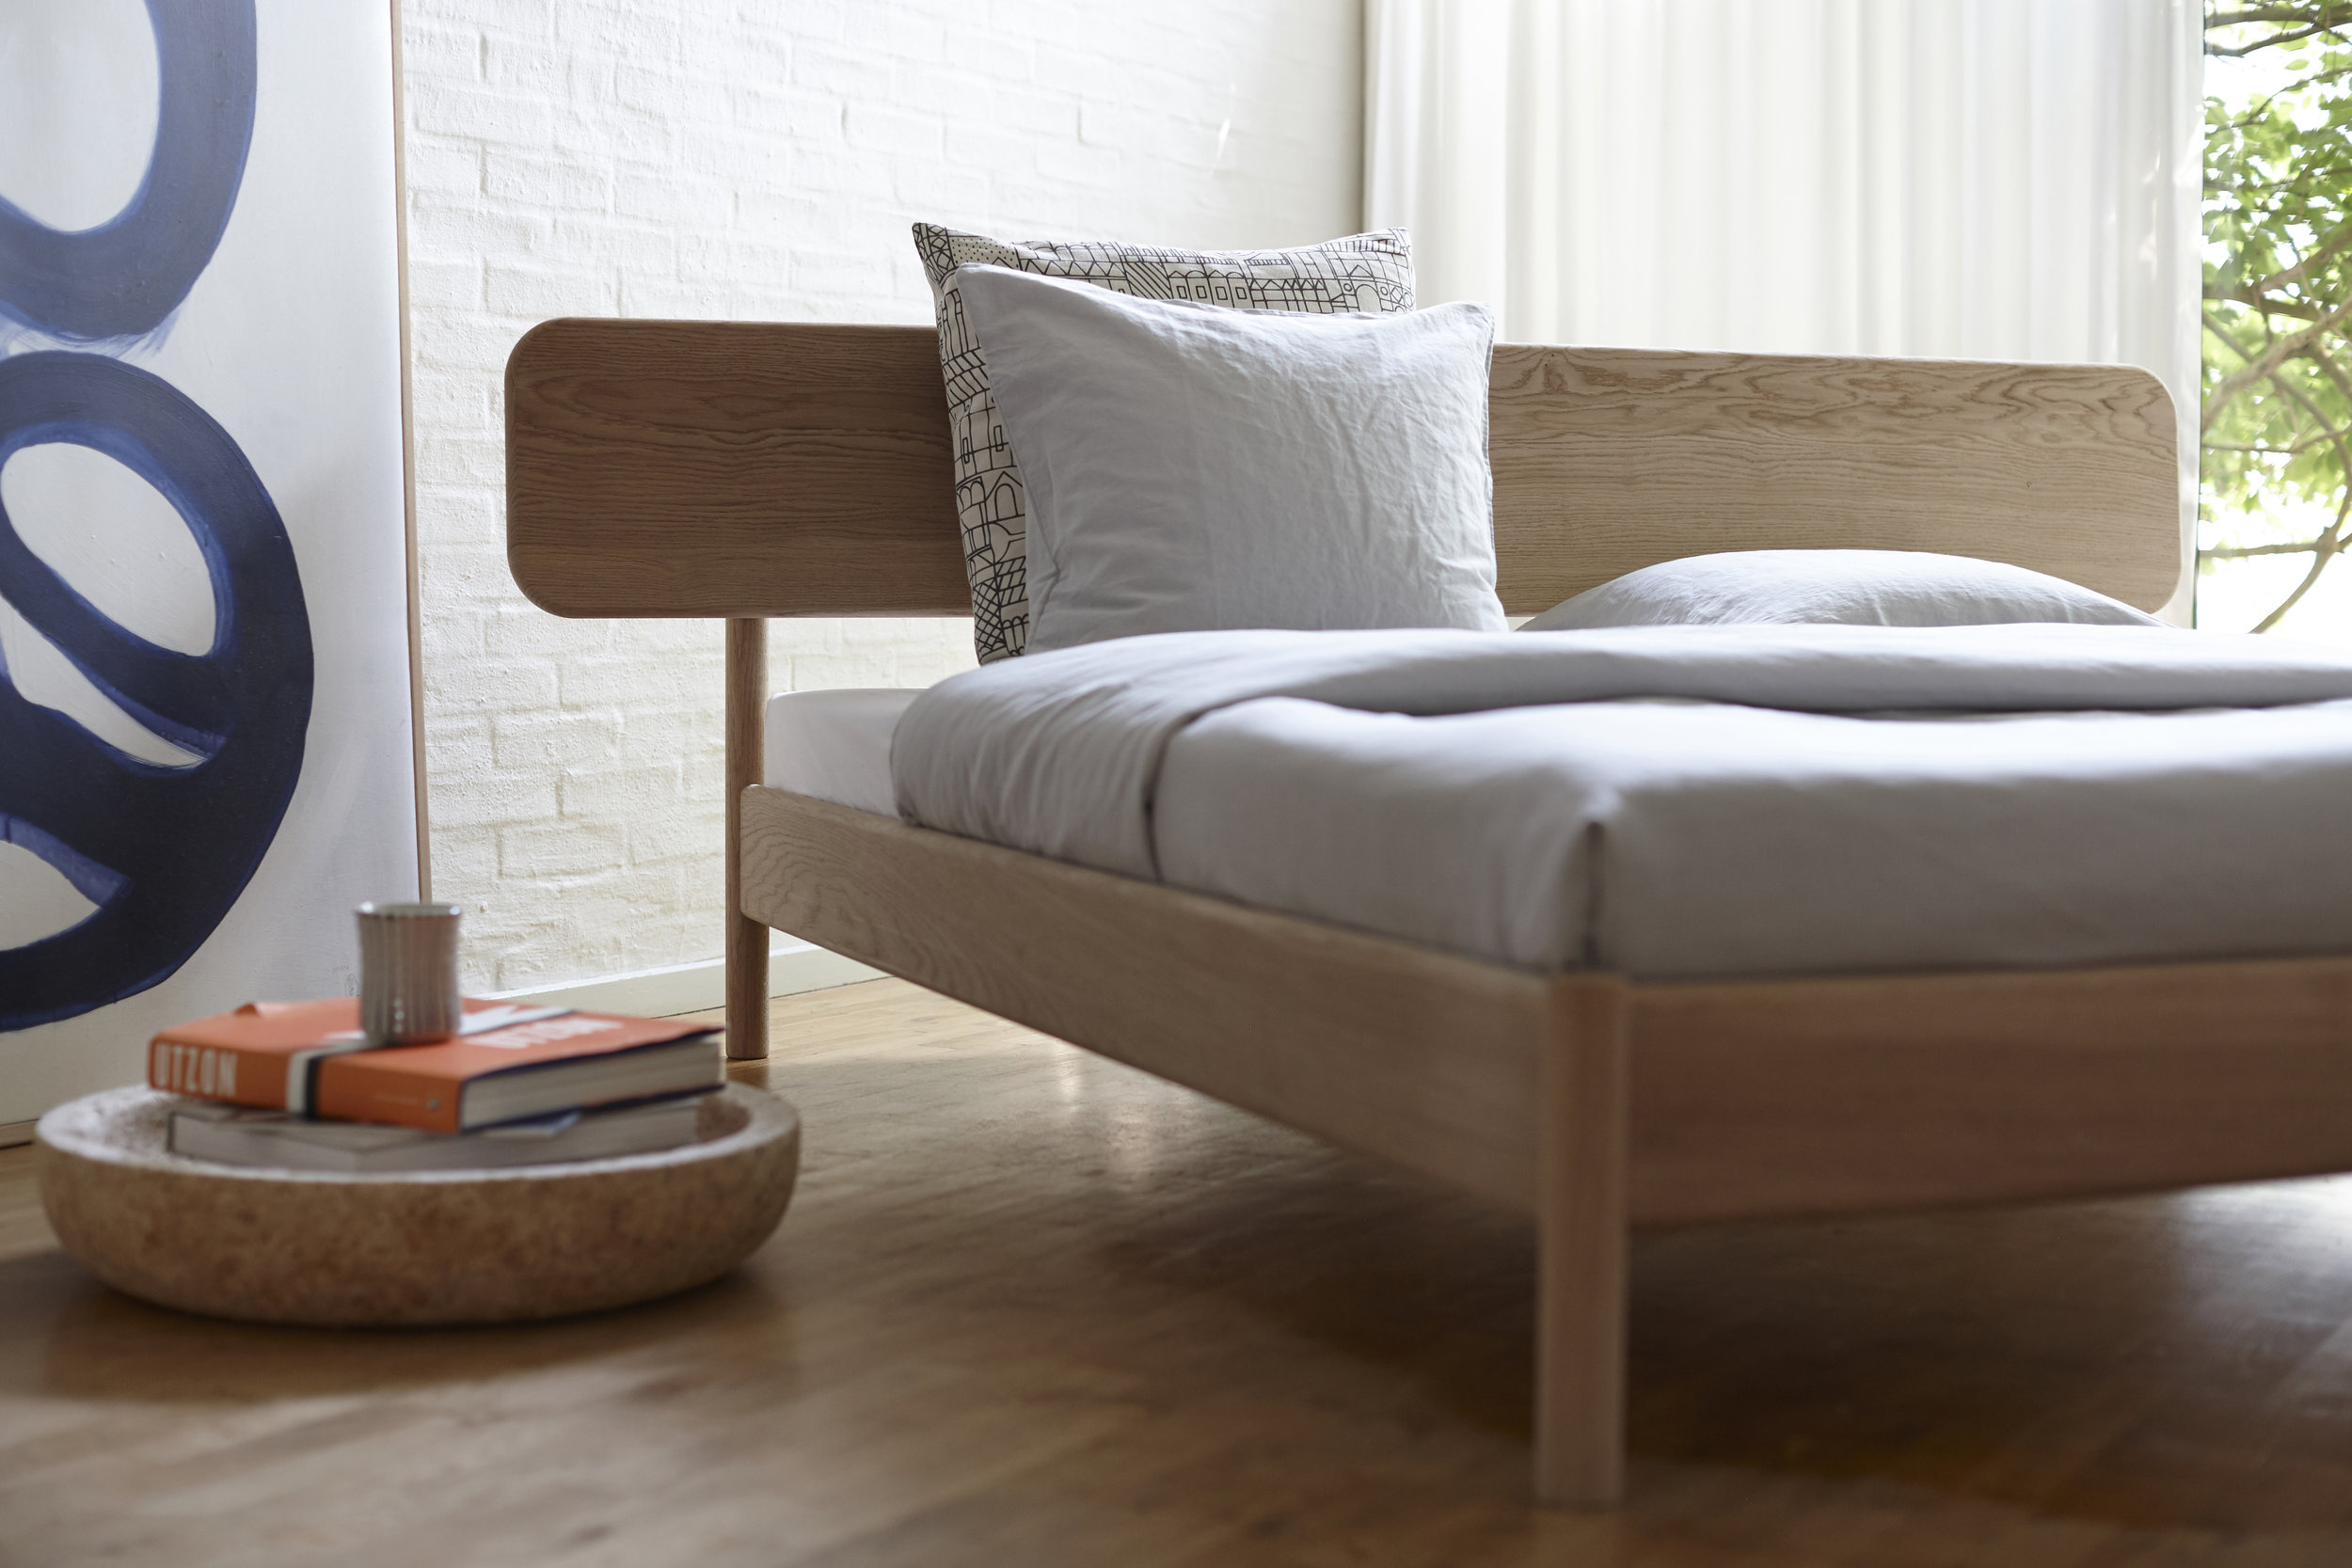 09 - ALKEN BED - RE NATURE BEDS - DESIGN BY OLIVER & LUKAS WEISSKROGH.jpg